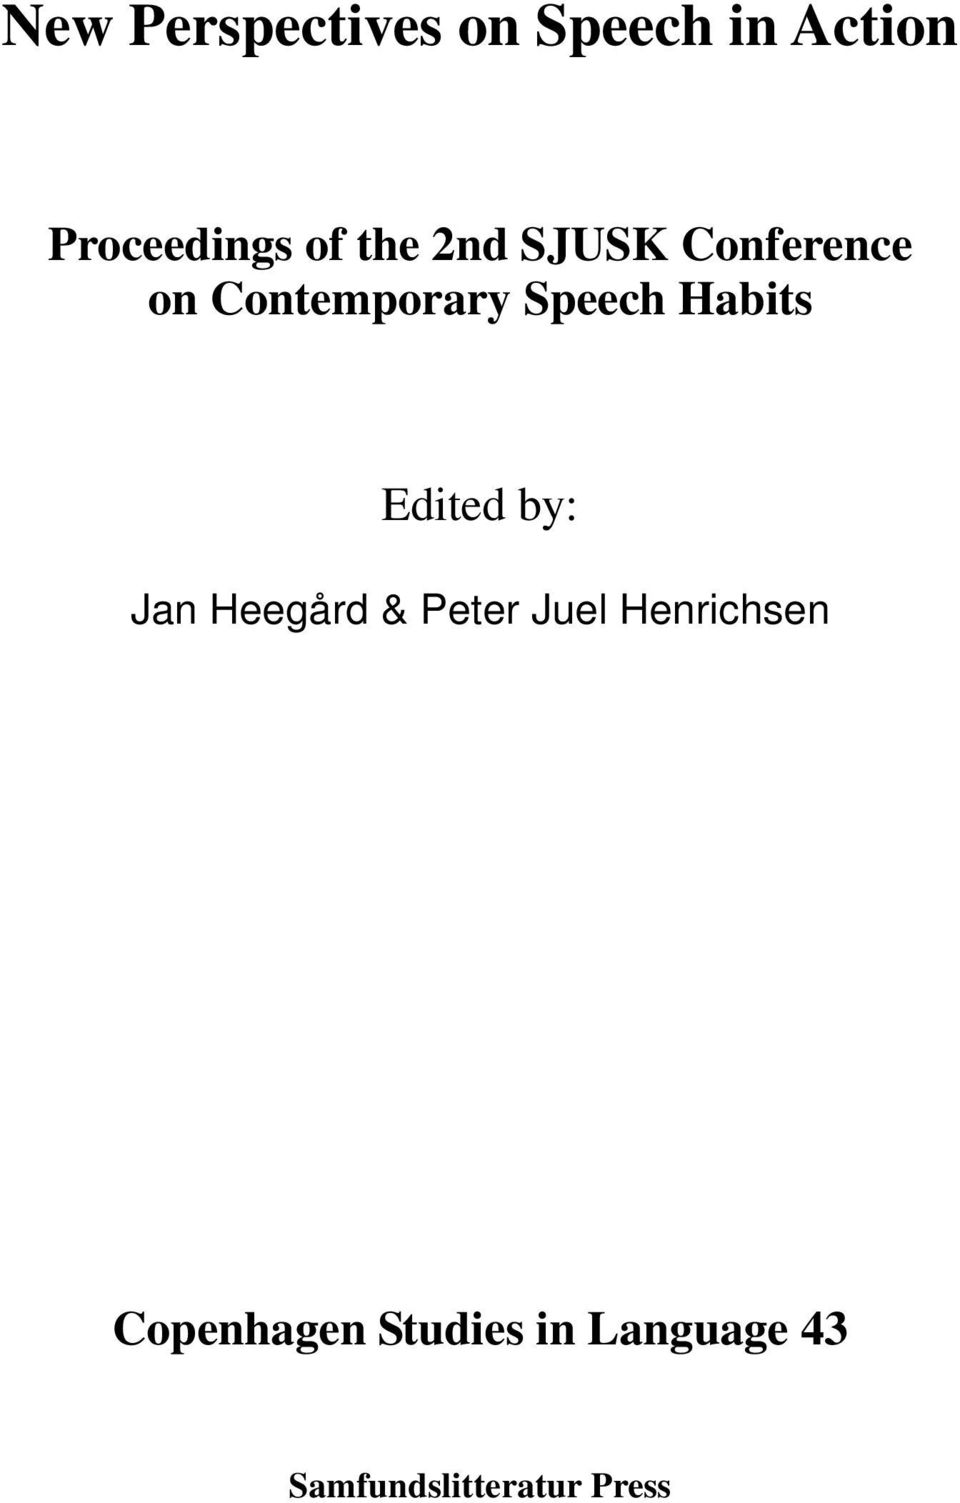 Habits Edited by: Jan Heegård & Peter Juel